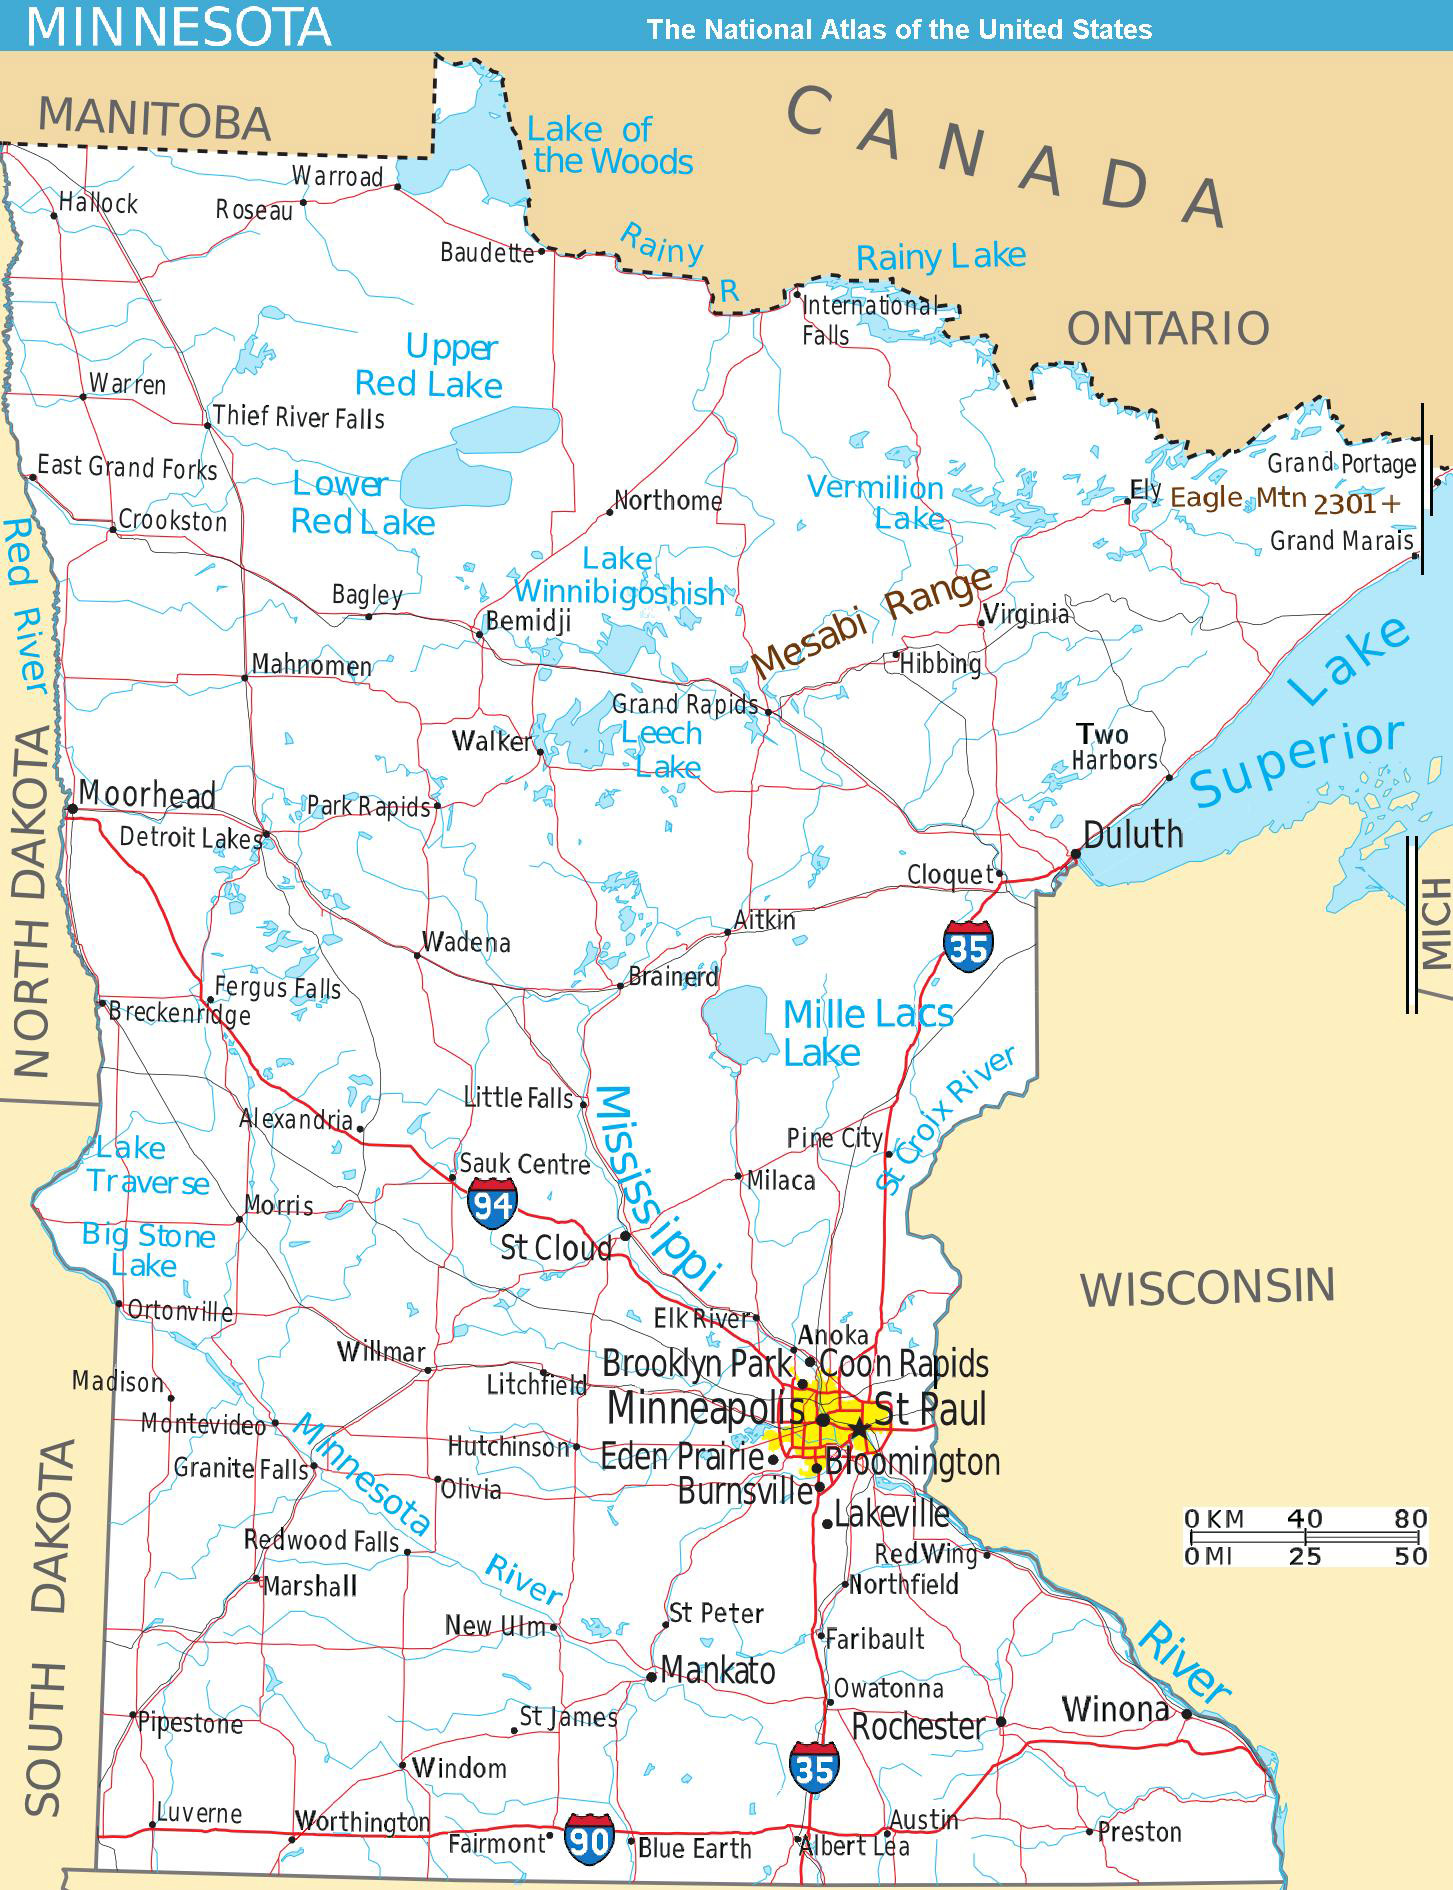 Large Detailed Map Of Minnesota State With Roads And Major Cities - State of minnesota map